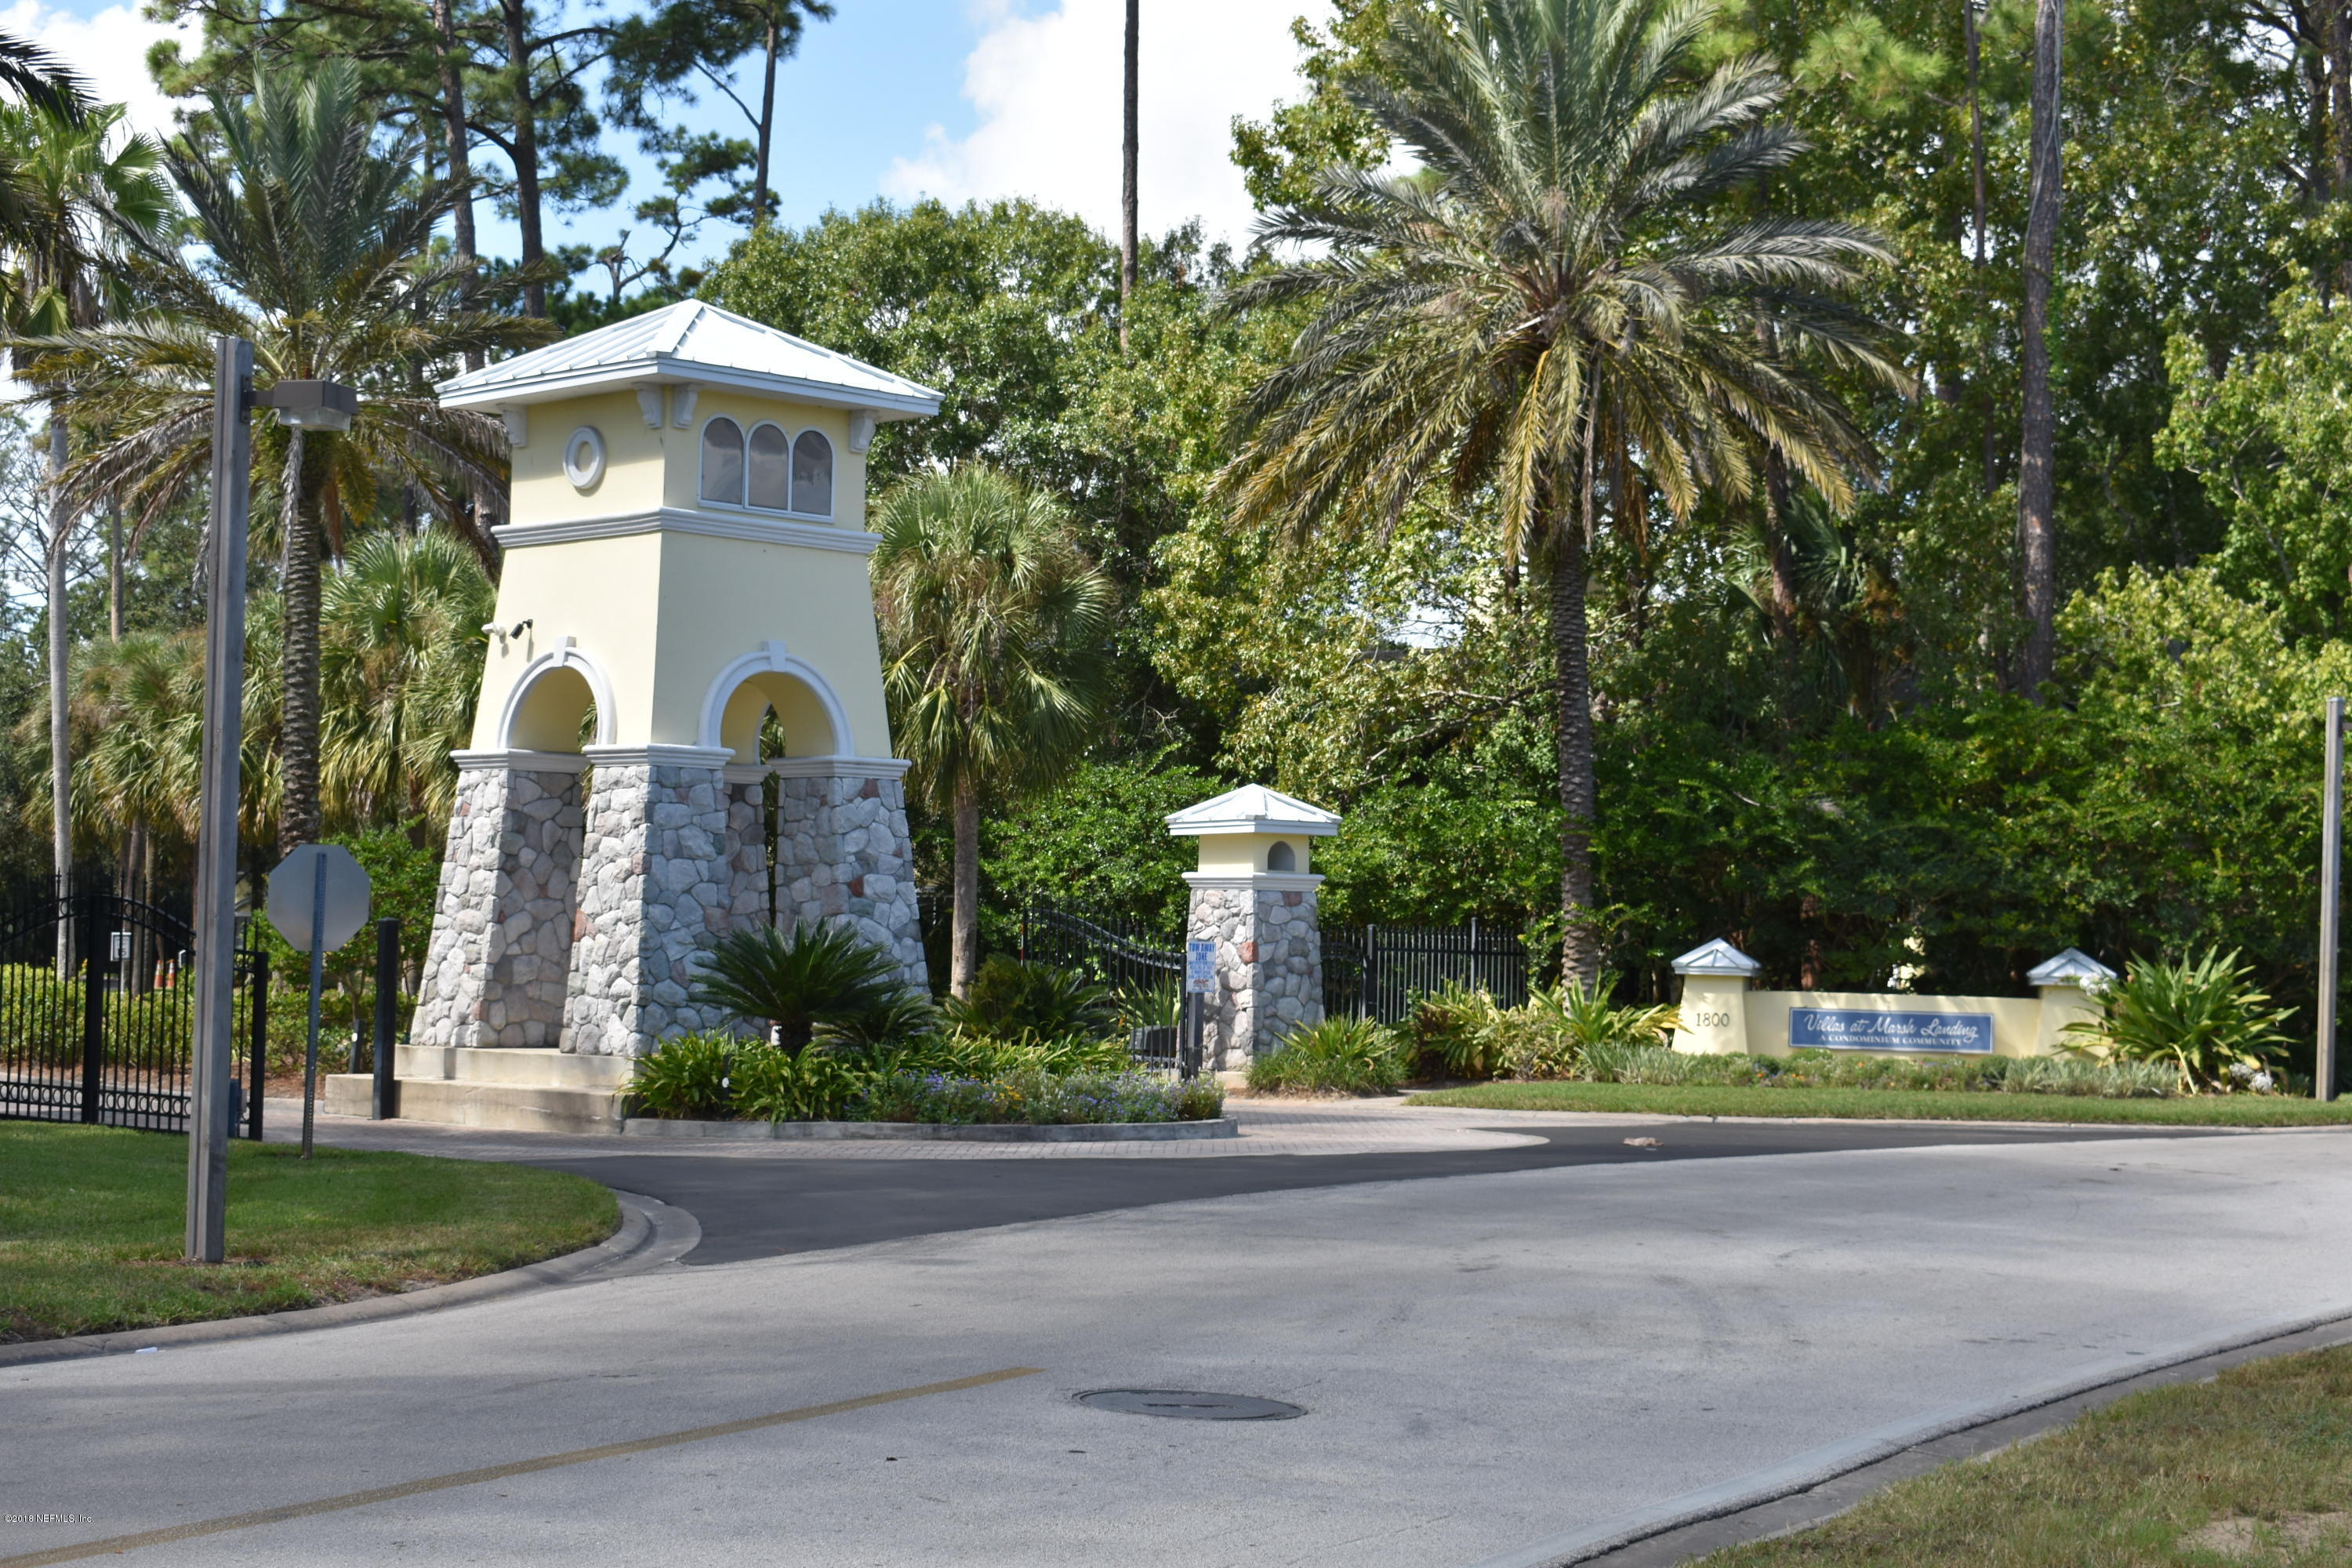 1800 THE GREENS, JACKSONVILLE BEACH, FLORIDA 32250, 2 Bedrooms Bedrooms, ,2 BathroomsBathrooms,Residential - condos/townhomes,For sale,THE GREENS,961124